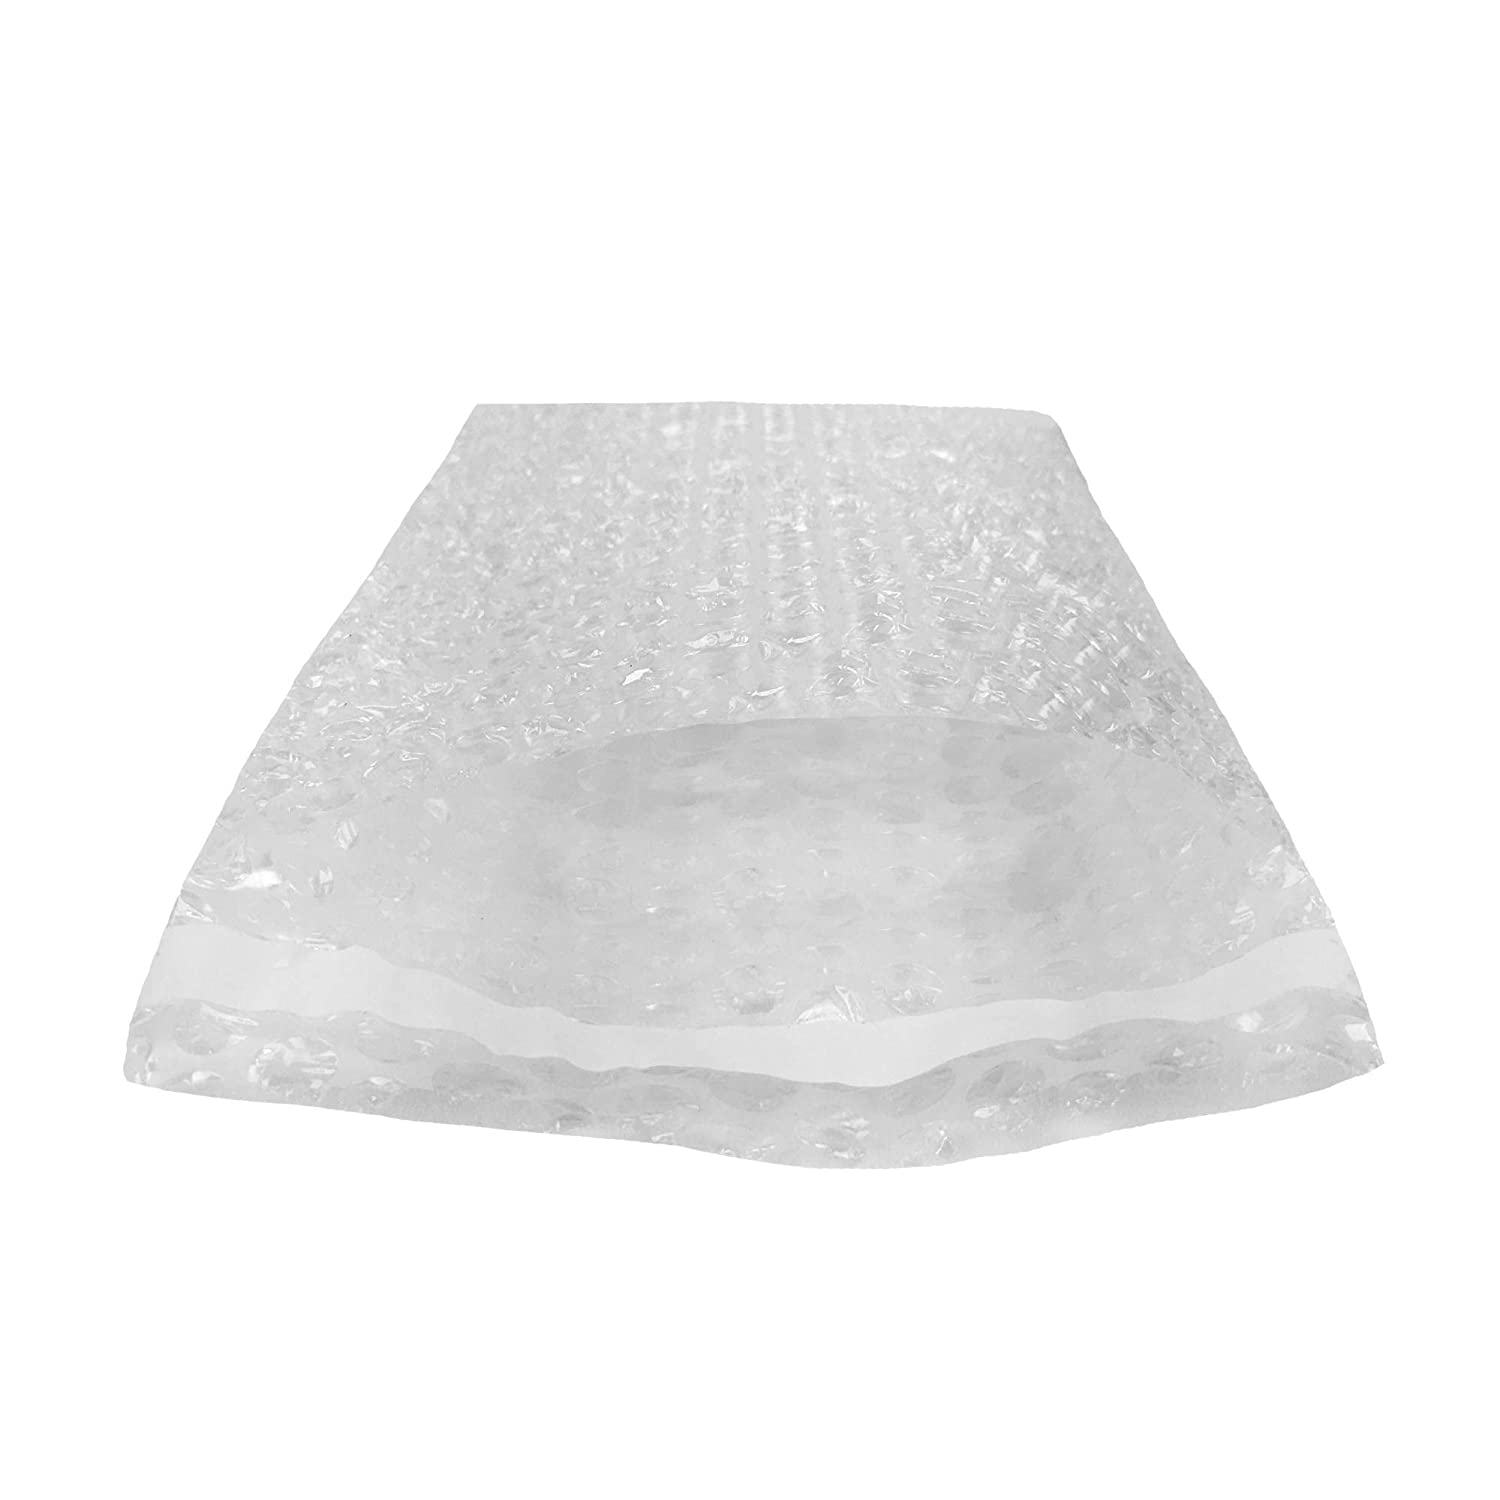 200 Bubble Out Bags 12x15.5 Protective Wrap Pouches Self Sealing